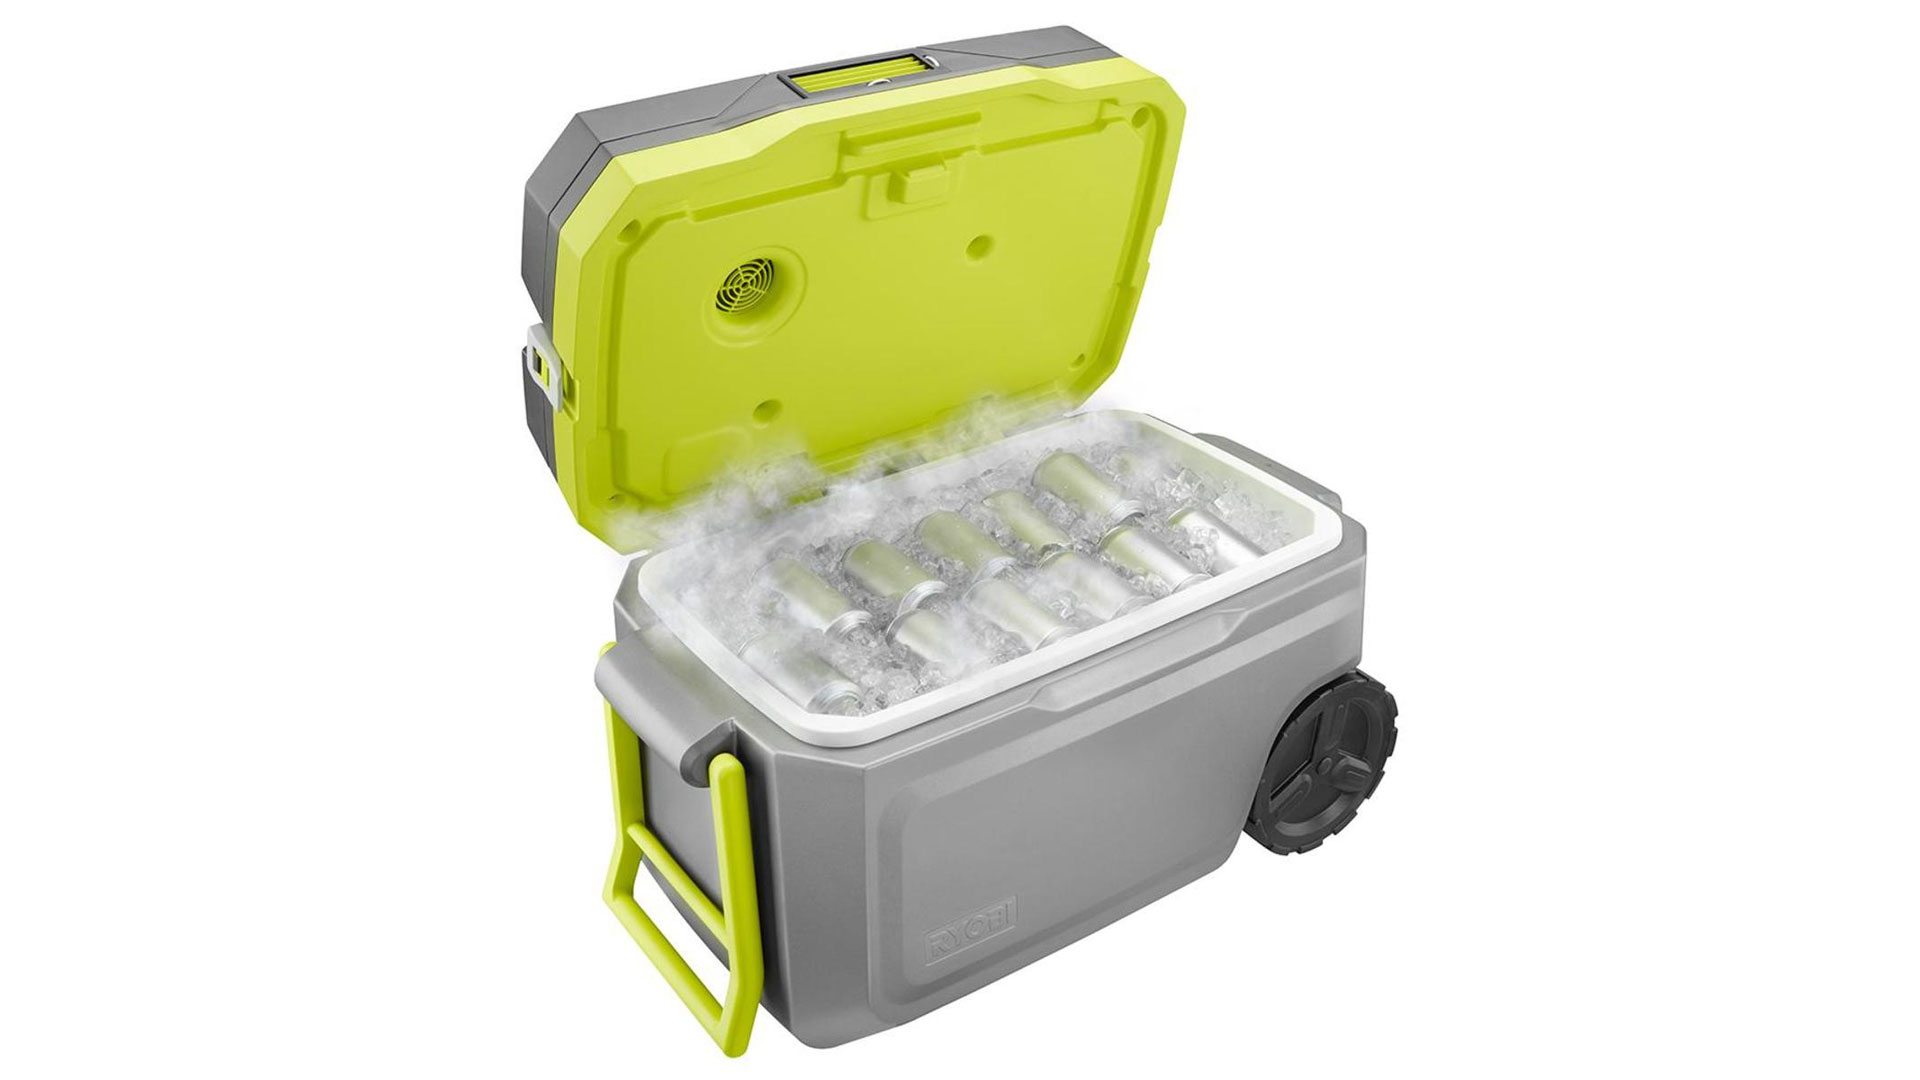 Ryobi Air Conditioner Cooler Koelbox